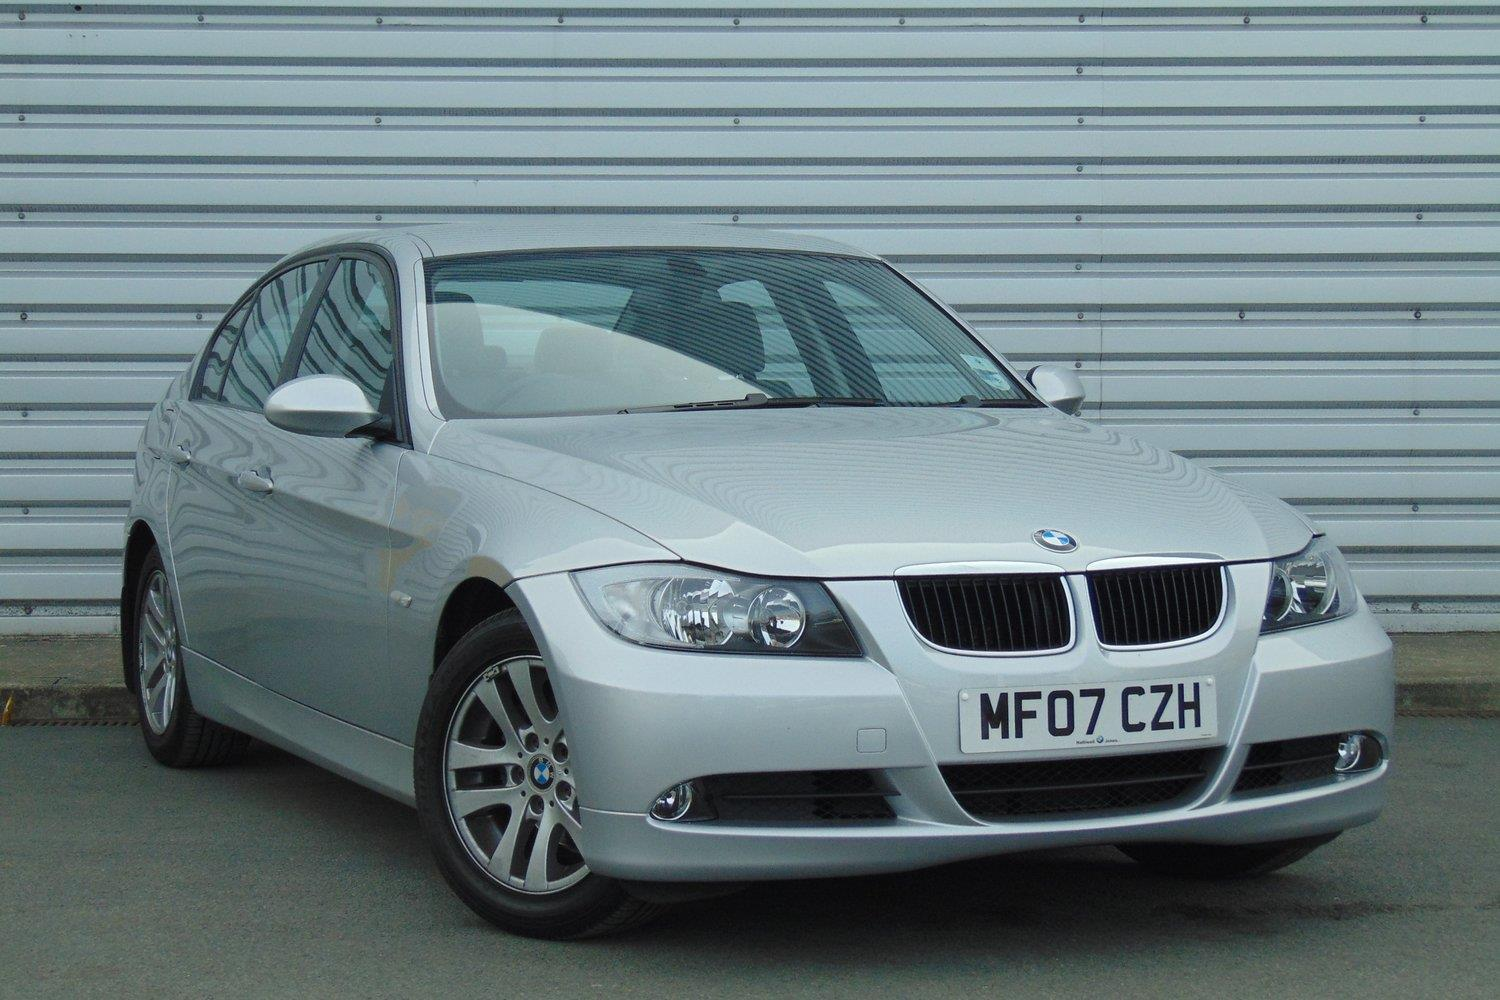 BMW 3 Series Saloon MF07CZH - Image 9